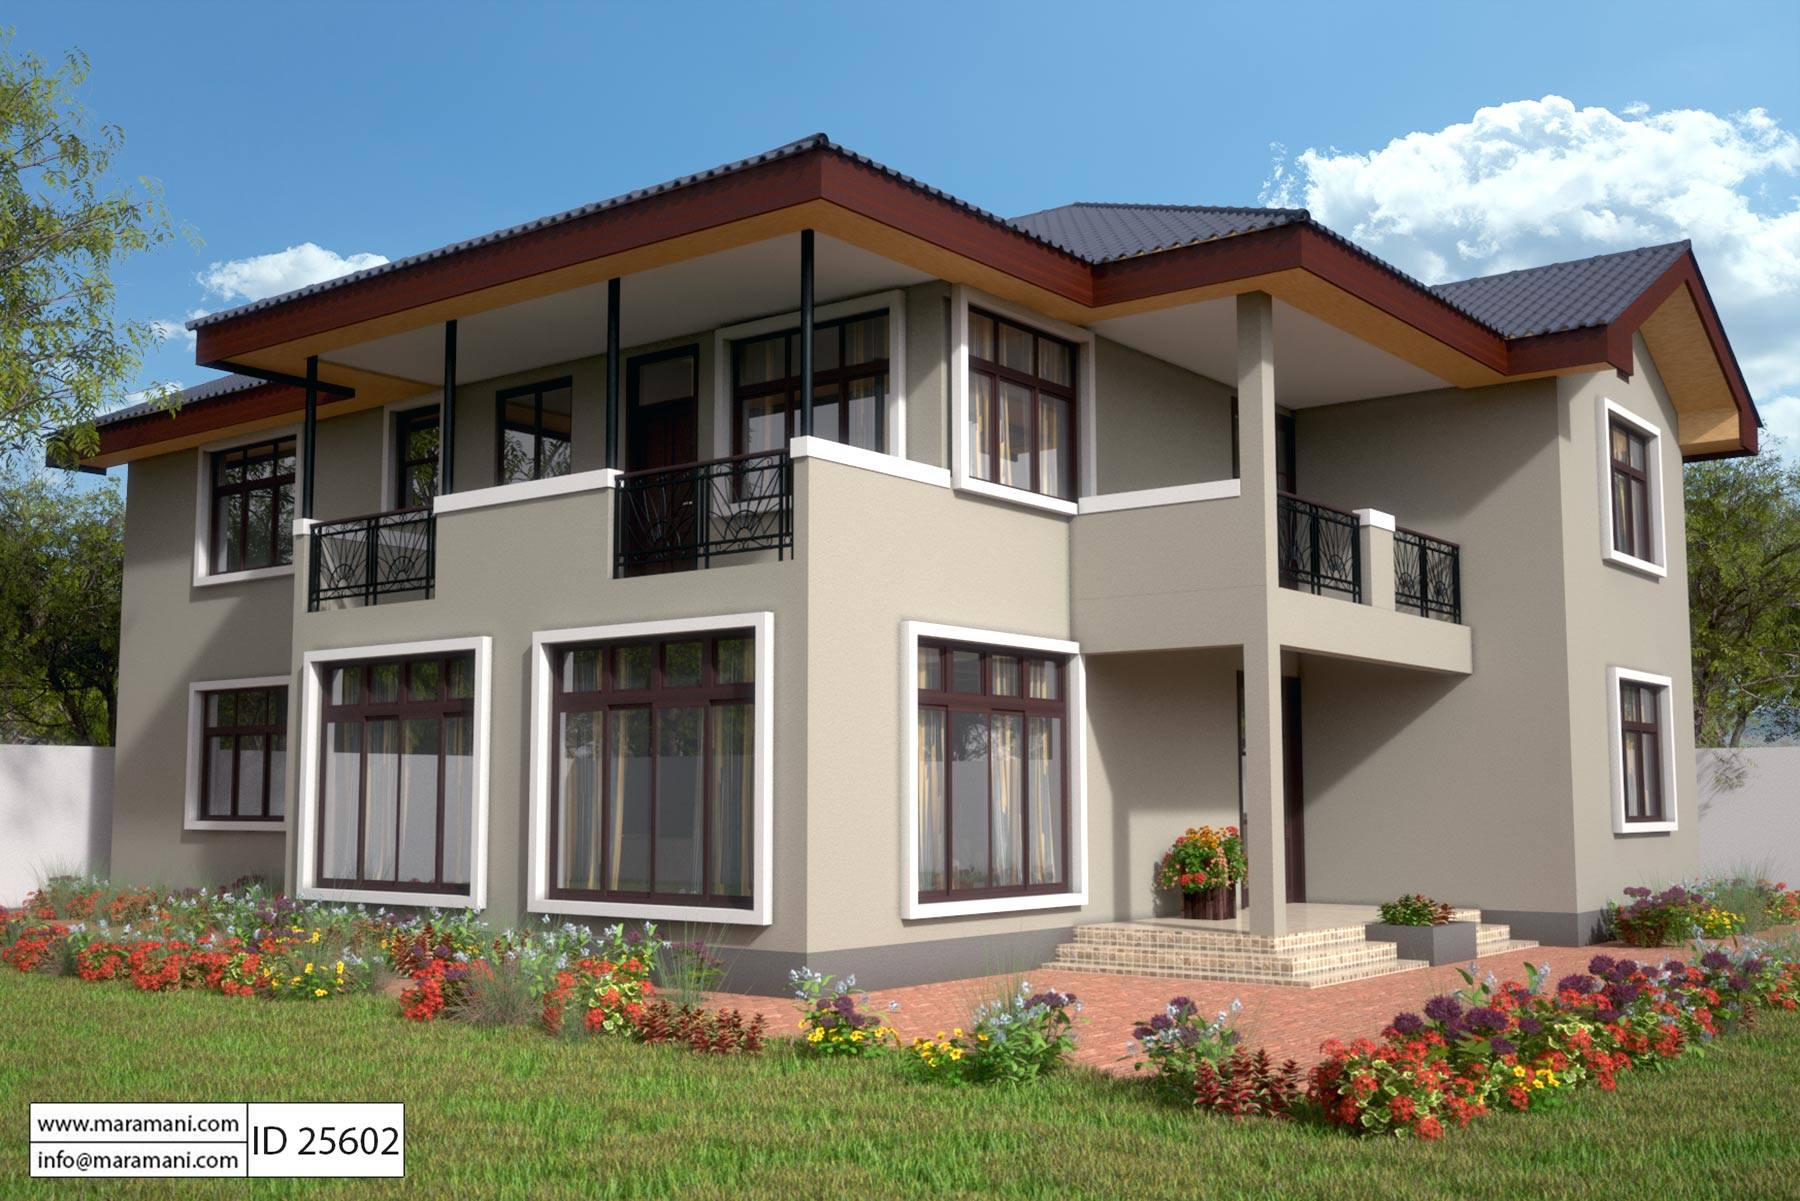 bedroom house design id 25602 house plans by maramani